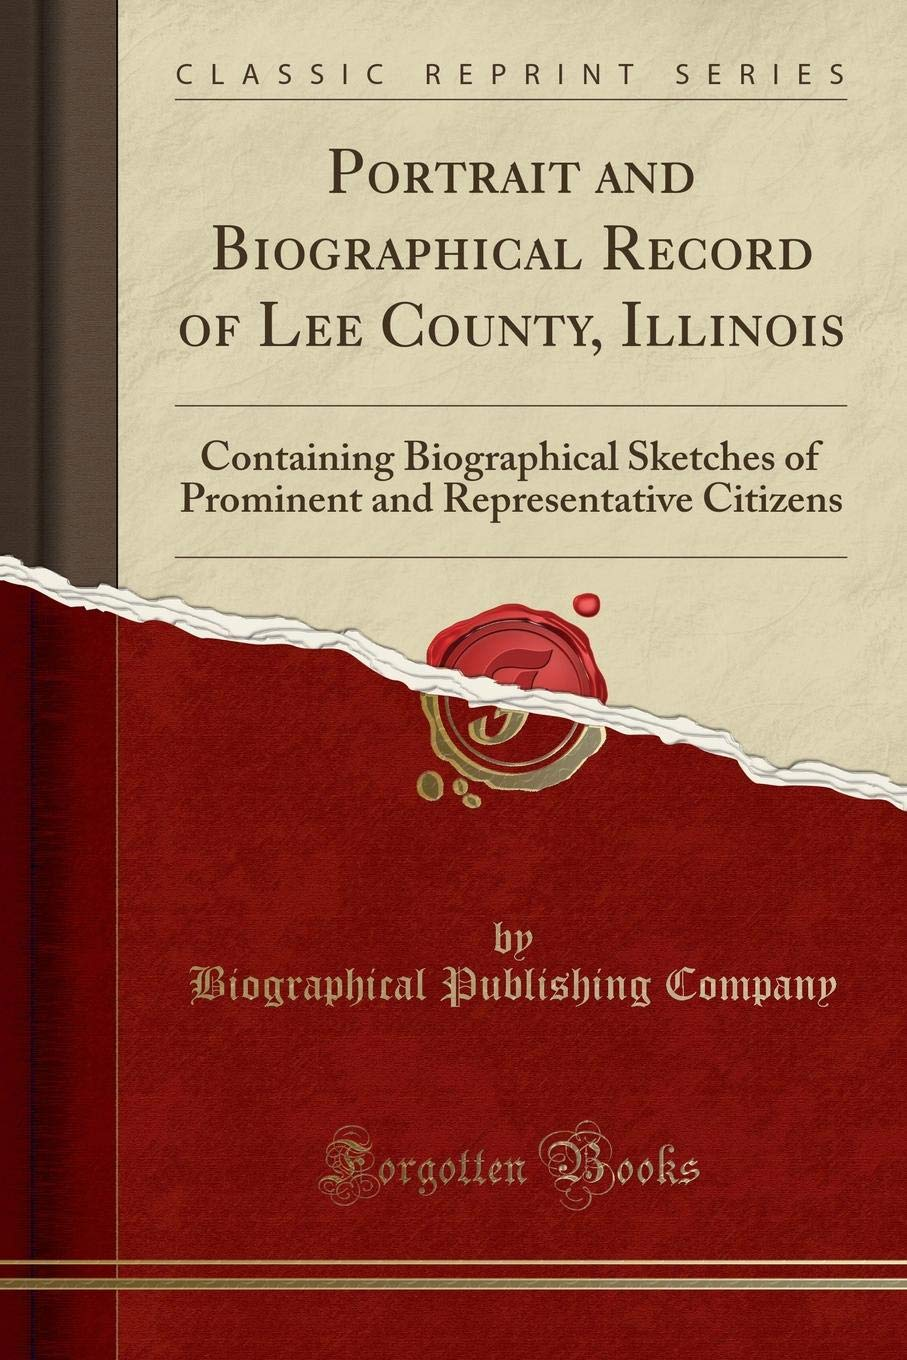 Download Portrait and Biographical Record of Lee County, Illinois: Containing Biographical Sketches of Prominent and Representative Citizens (Classic Reprint) pdf